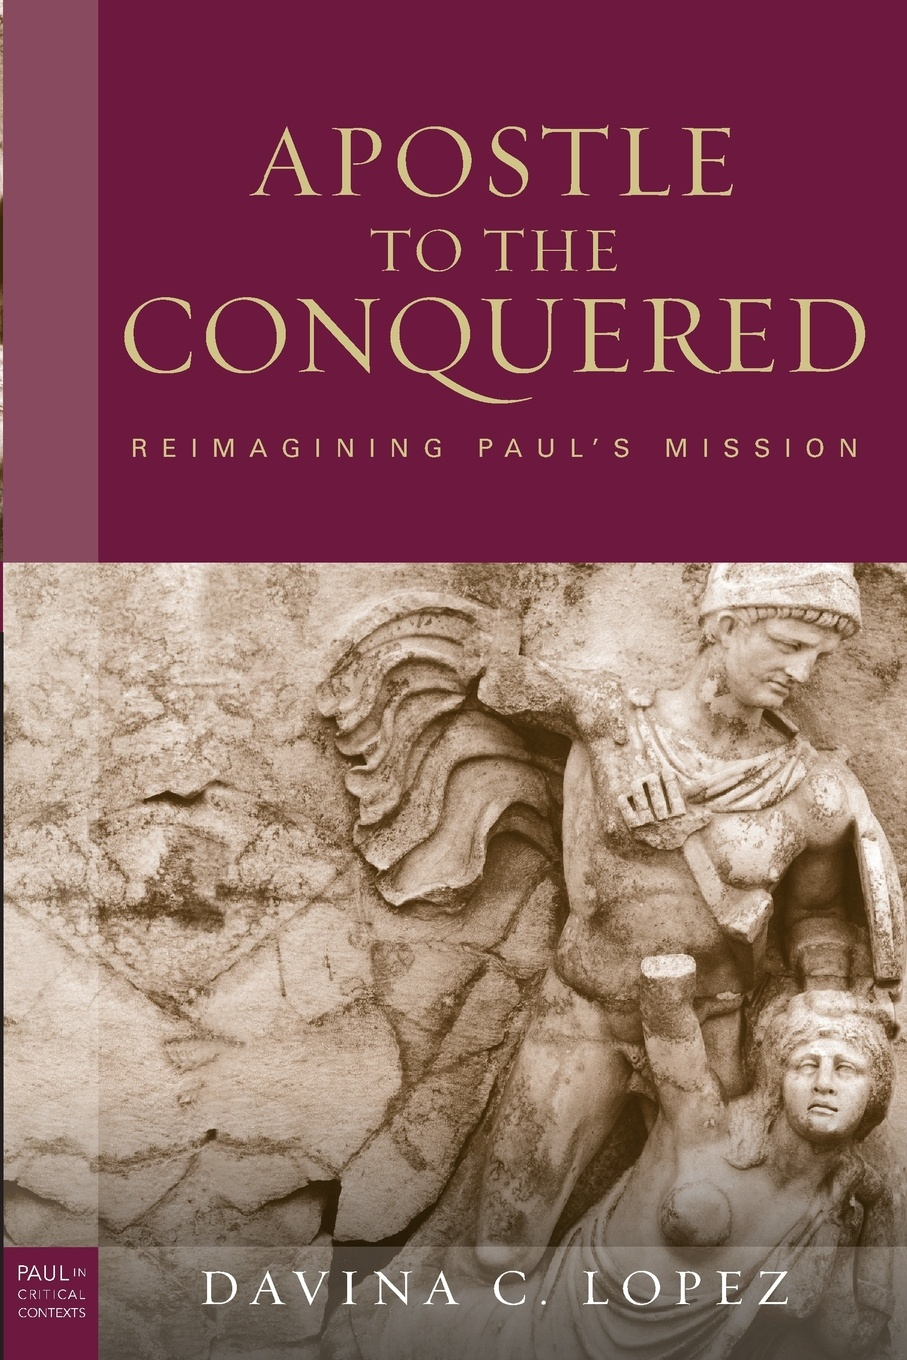 Davina C. Lopez Apostle to the Conquered. Reimagining Paul's Mission reimagining the norm